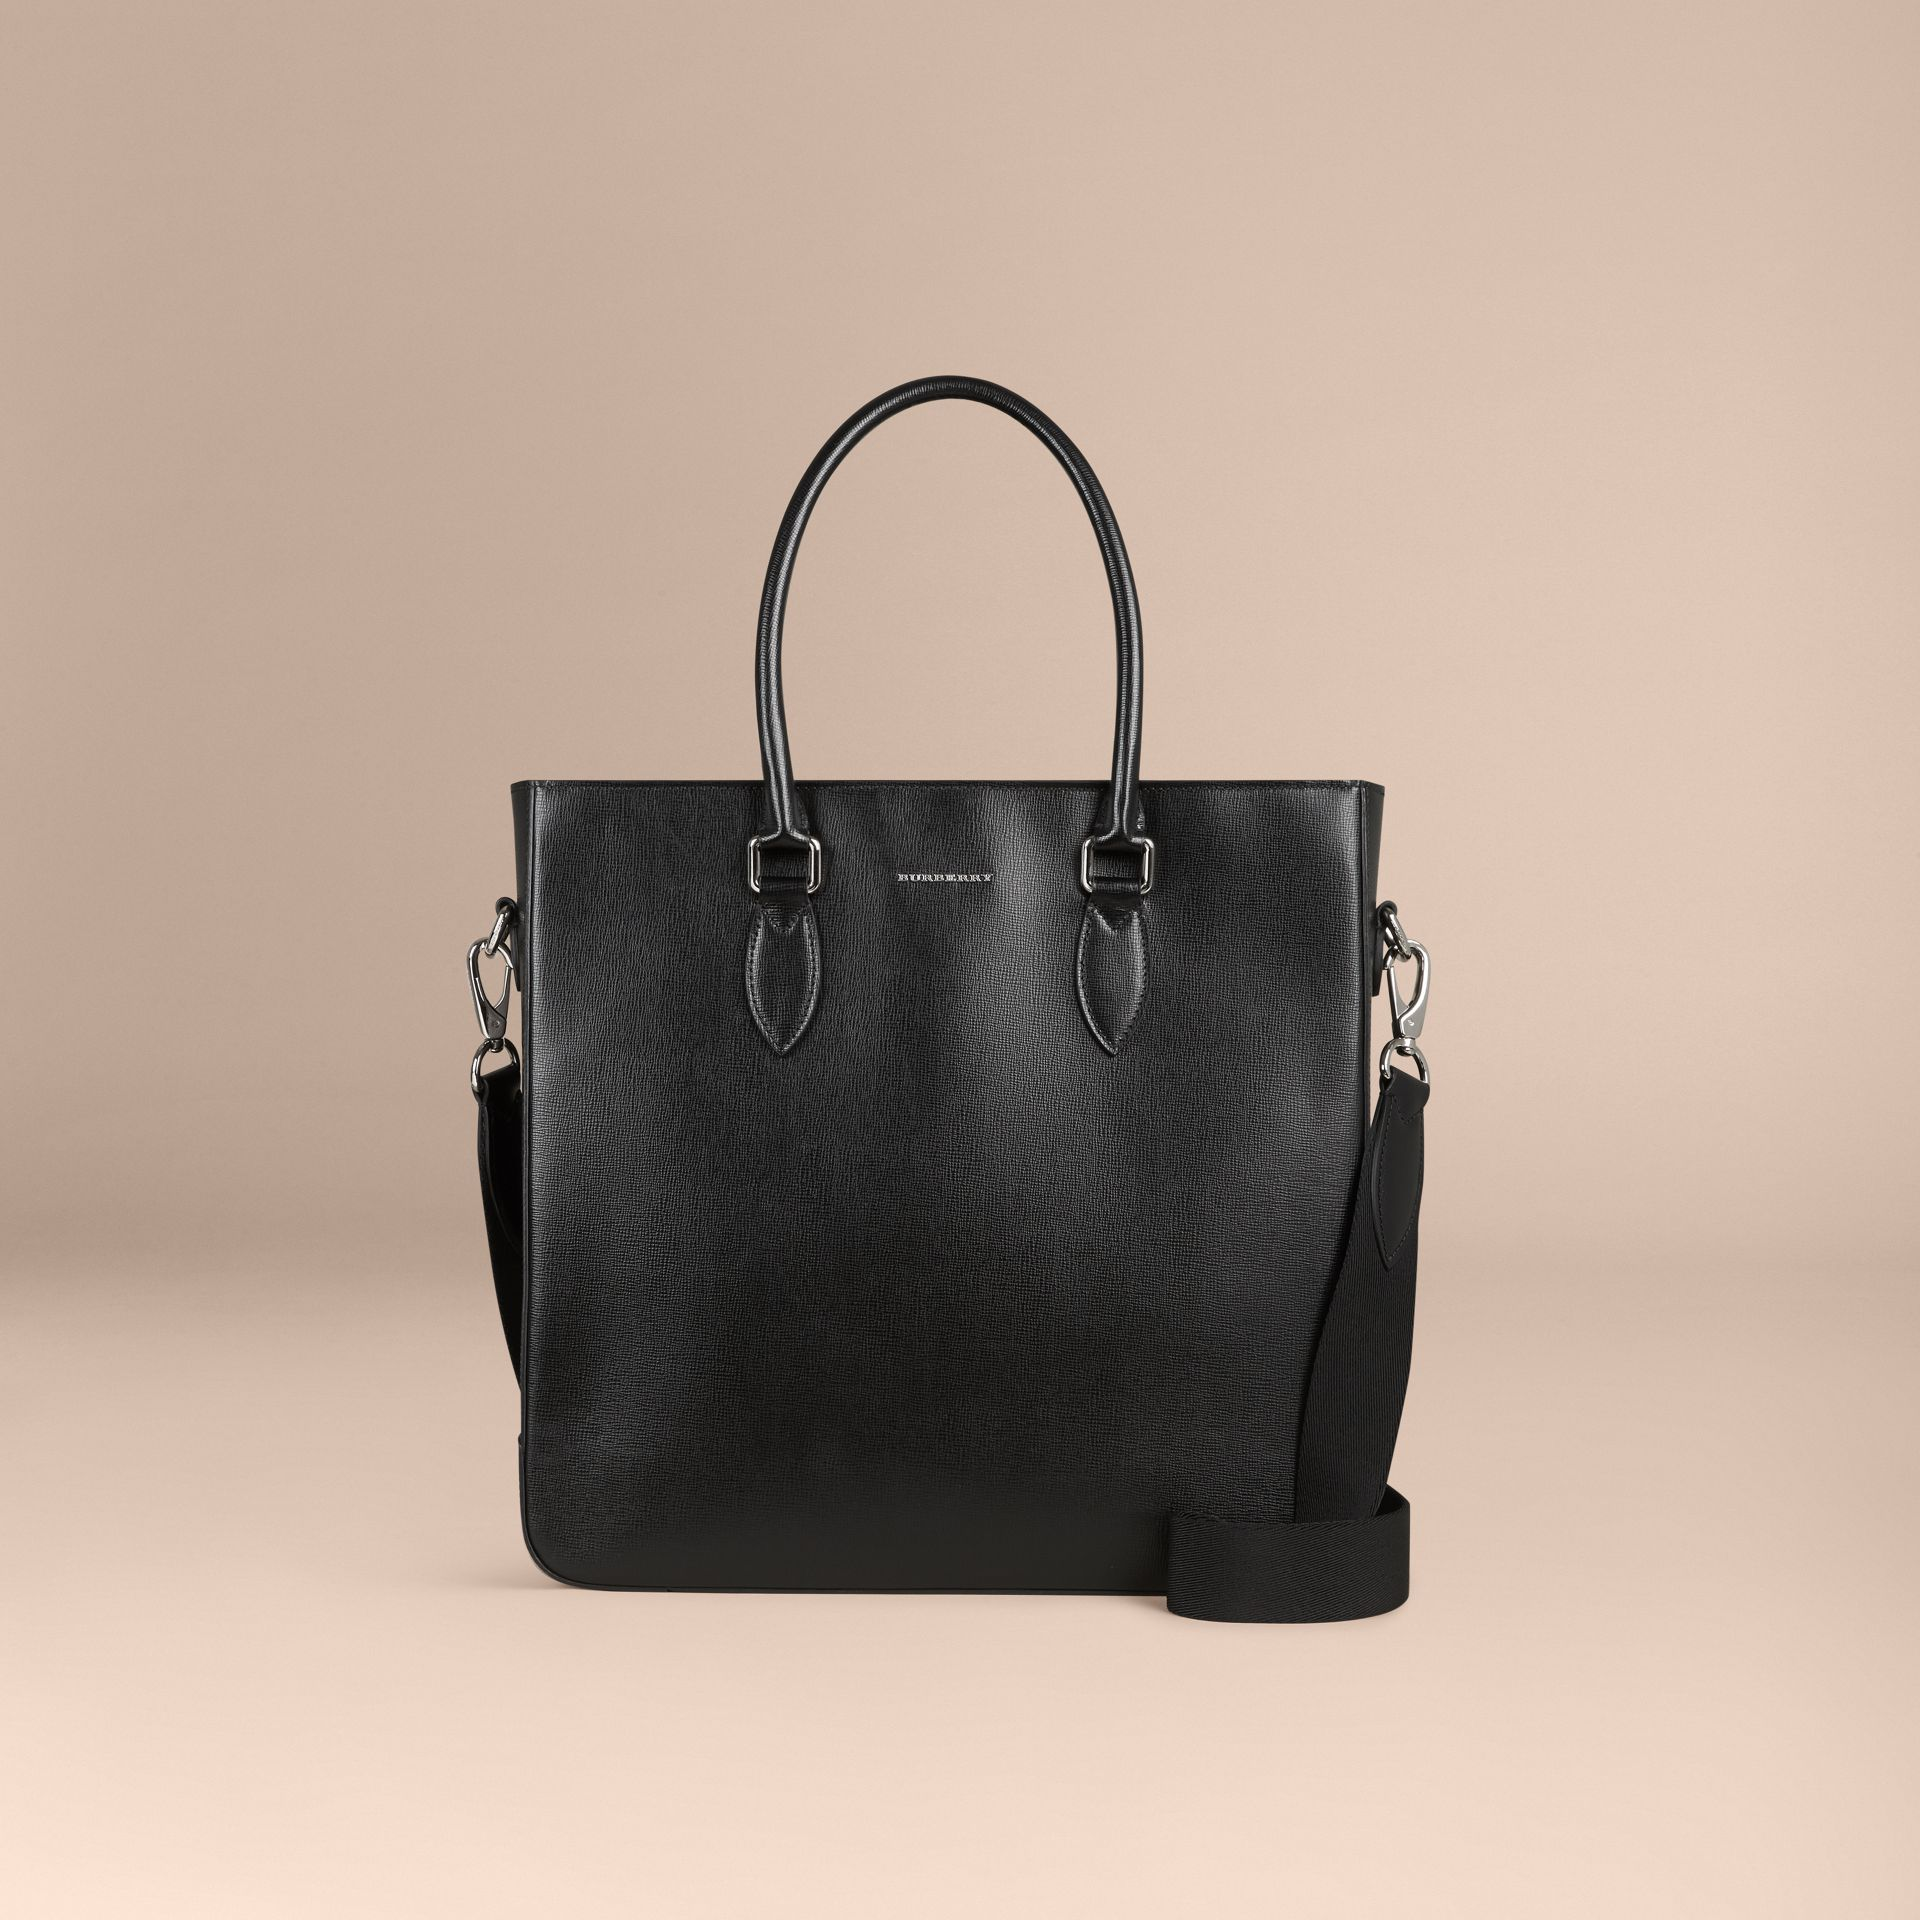 London Leather Tote Bag in Black - gallery image 8